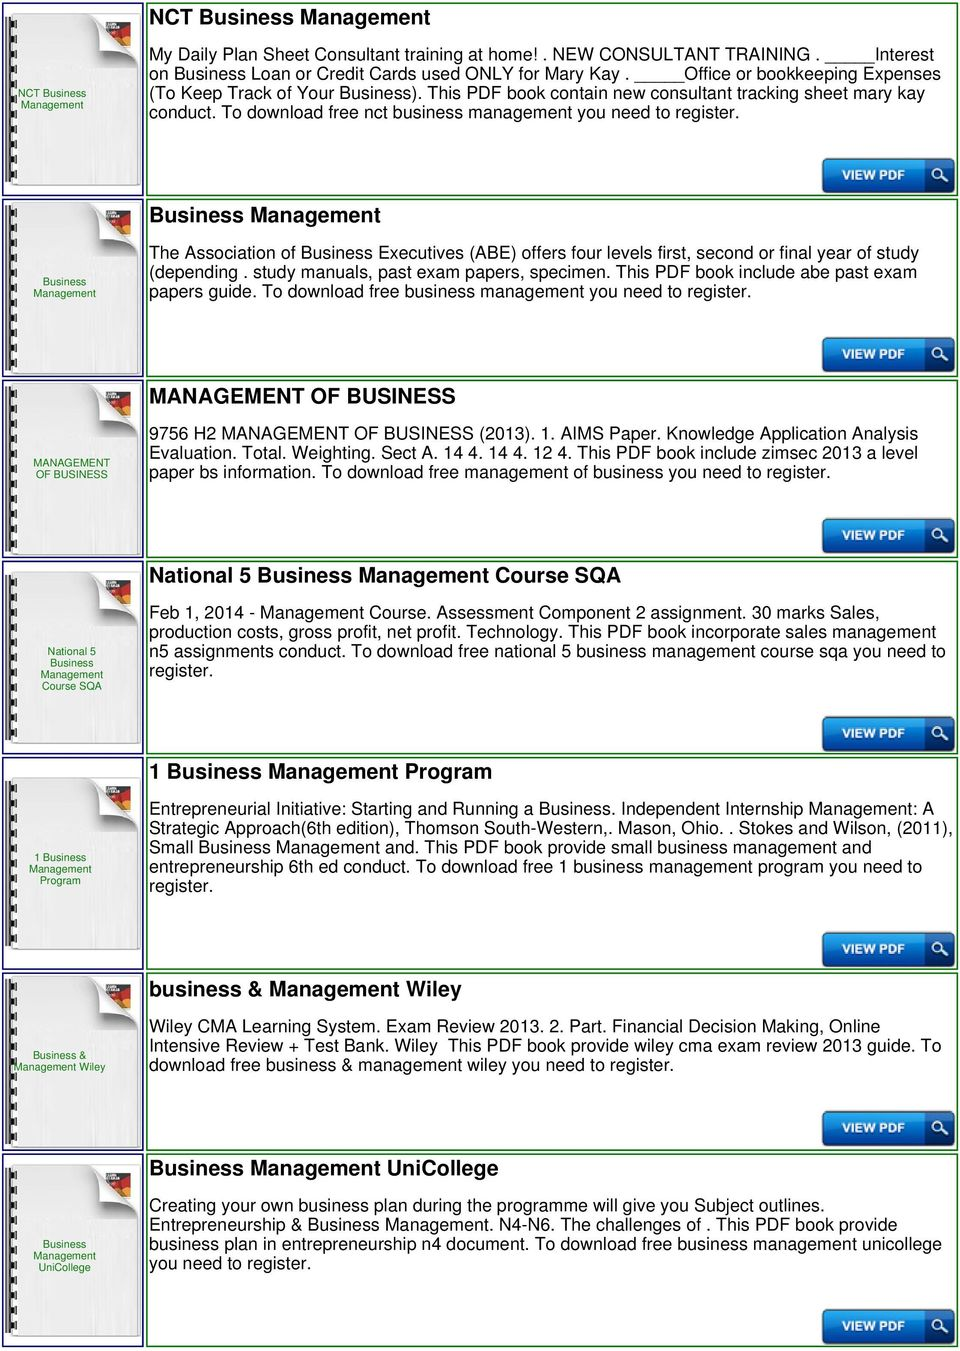 Ib business and management formula booklet pdf to download free nct business management you need to the association of executives abe fandeluxe Image collections